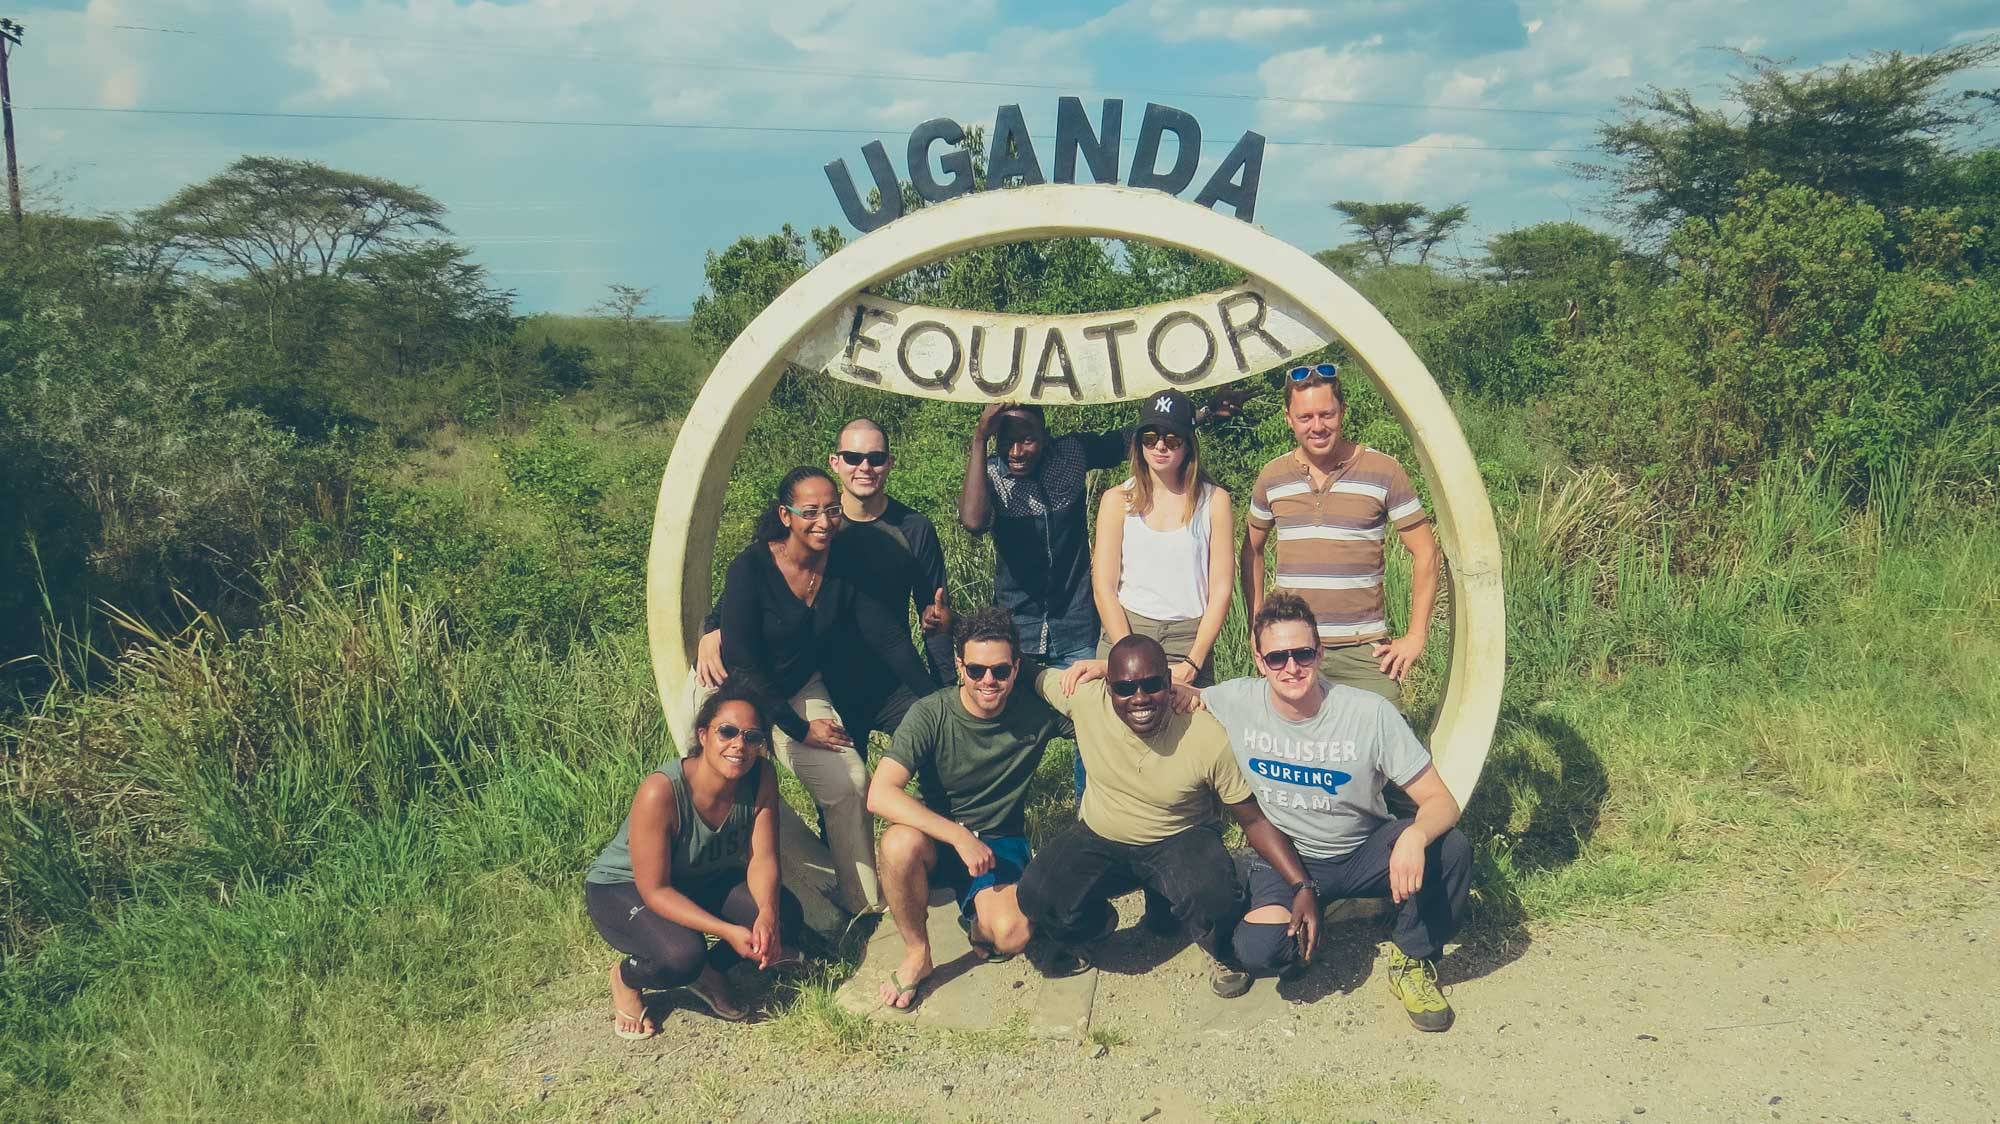 At the equator in Uganda